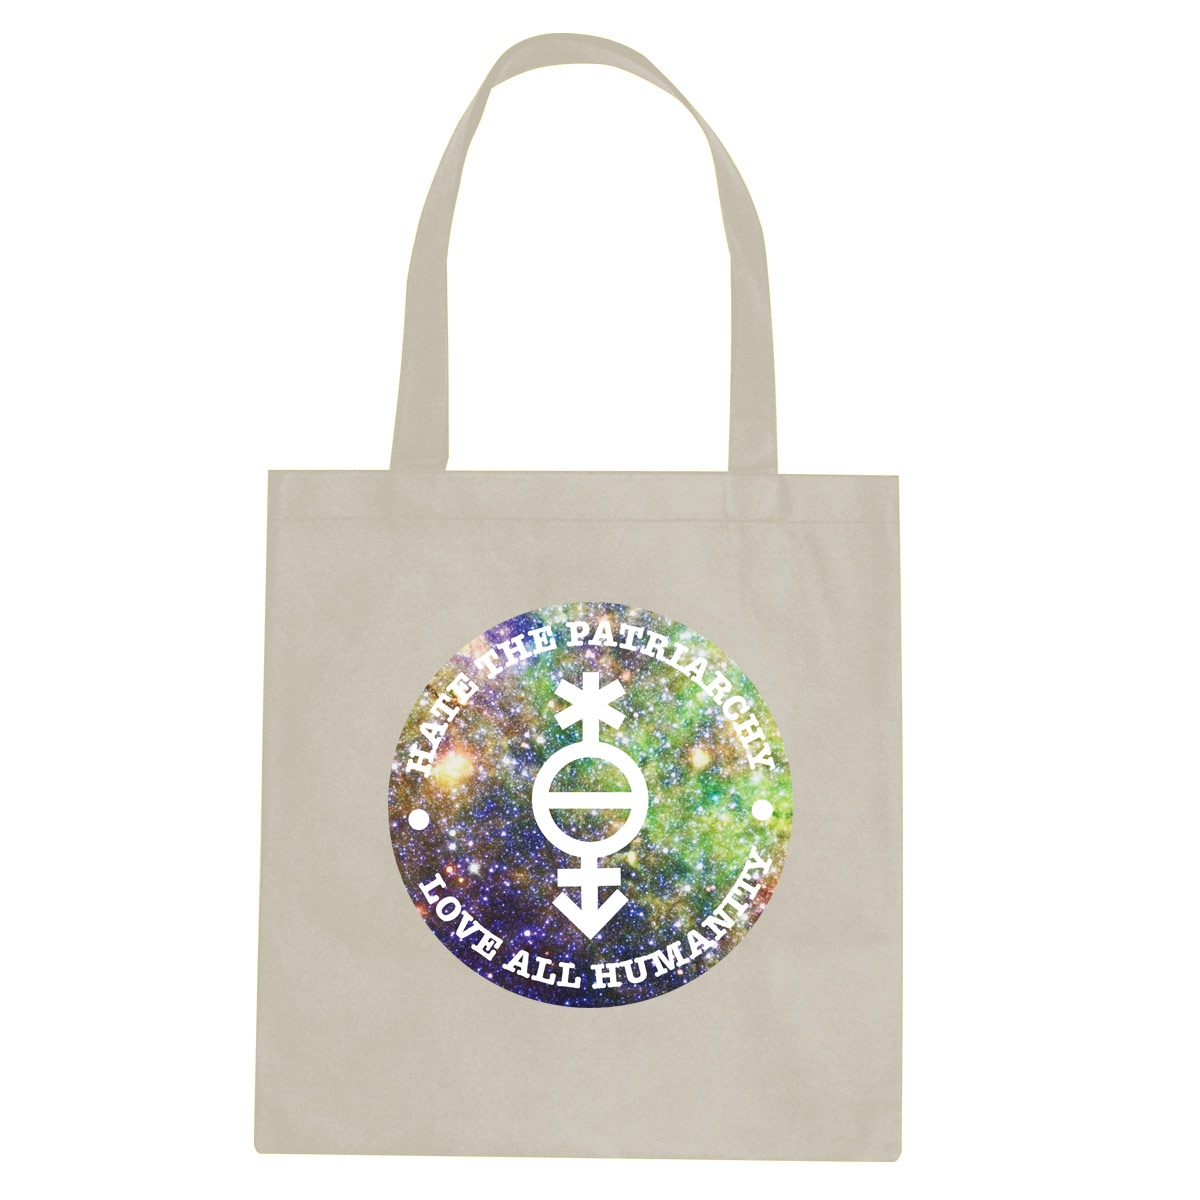 Love All Humanity tote bag  €14.99 Available in natural